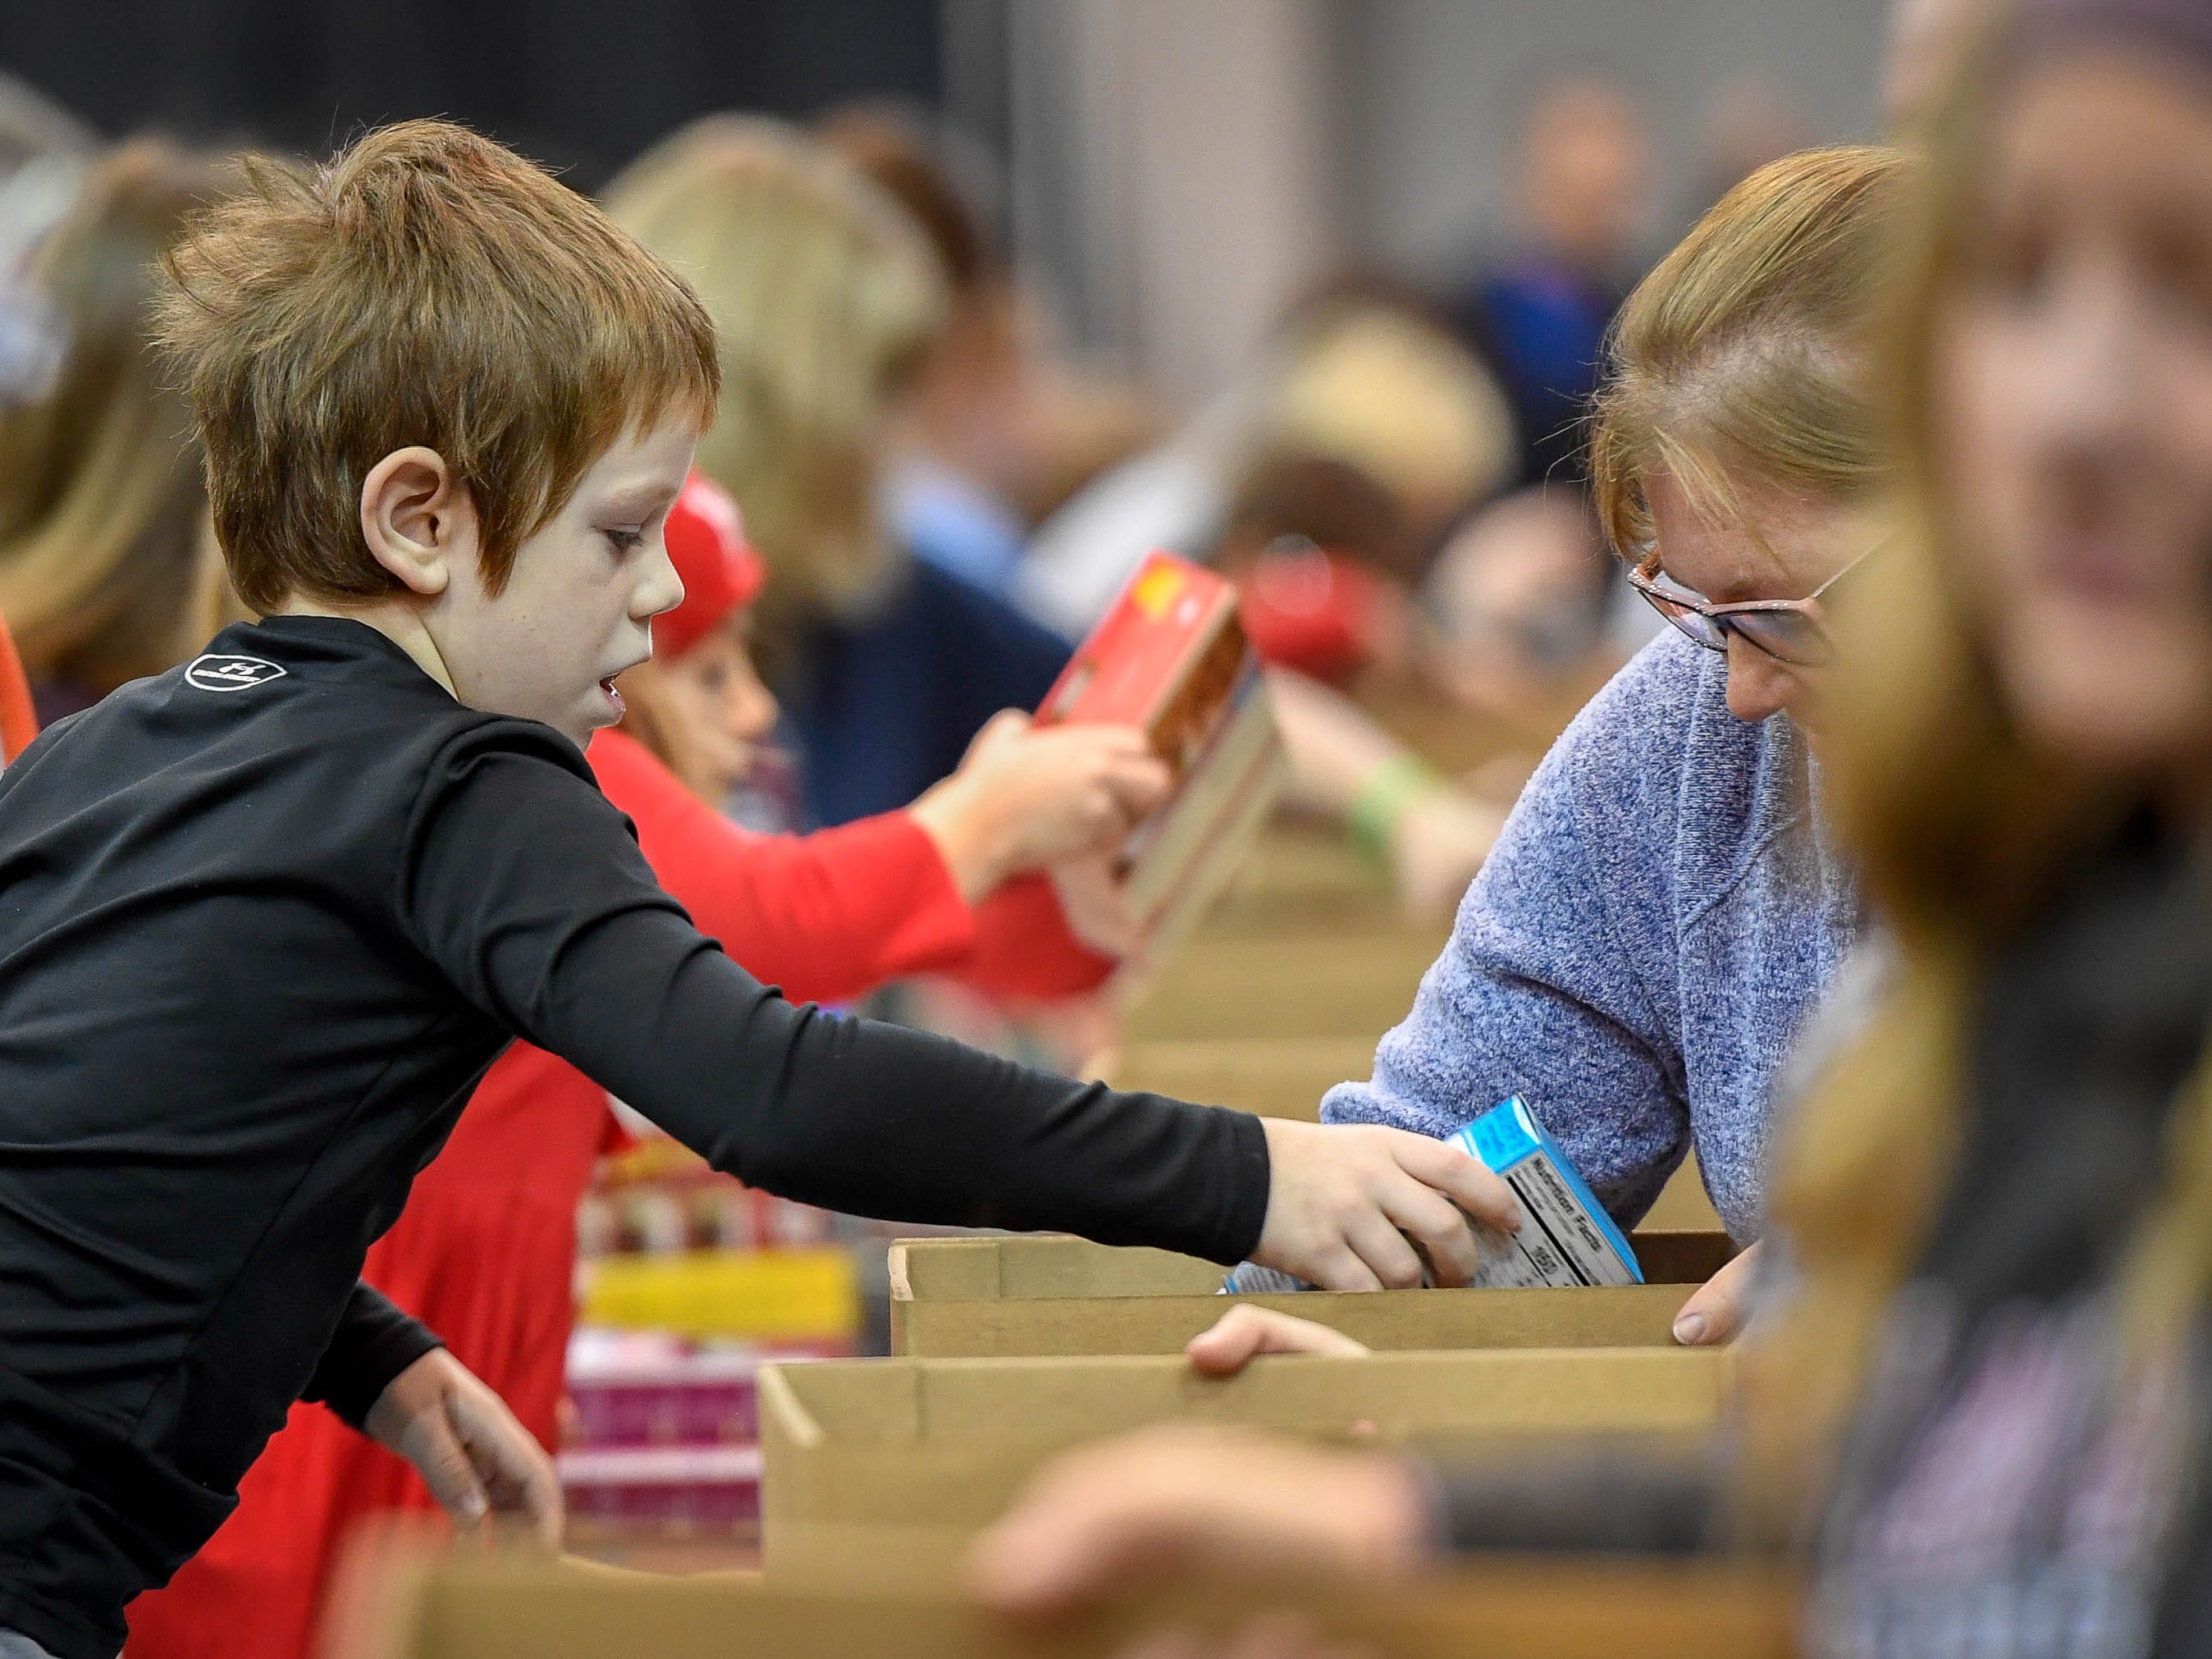 Doing his part, Carson Hetzel-Gaynor, 7 years-old, puts boxes of muffin mix into food boxes at the Evansville Rescue Mission's 96th annual Gobbler Gathering held at the Old National Events Plaza Tuesday, November 20, 2018.